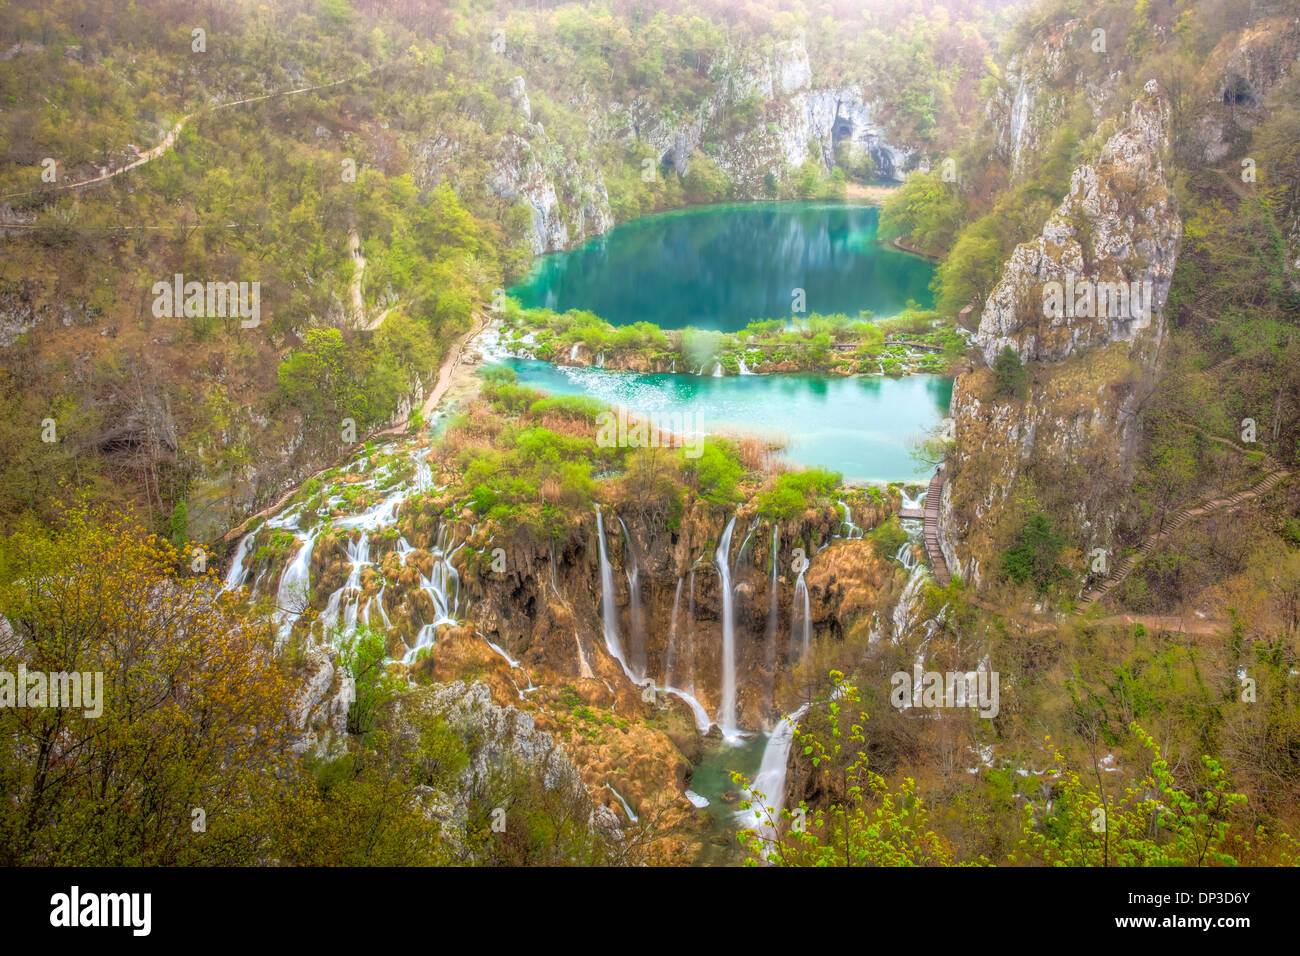 Blue-green waterfalls Plitvice Lakes National Park Croatia Water-colored from limestone and travertine - Stock Image